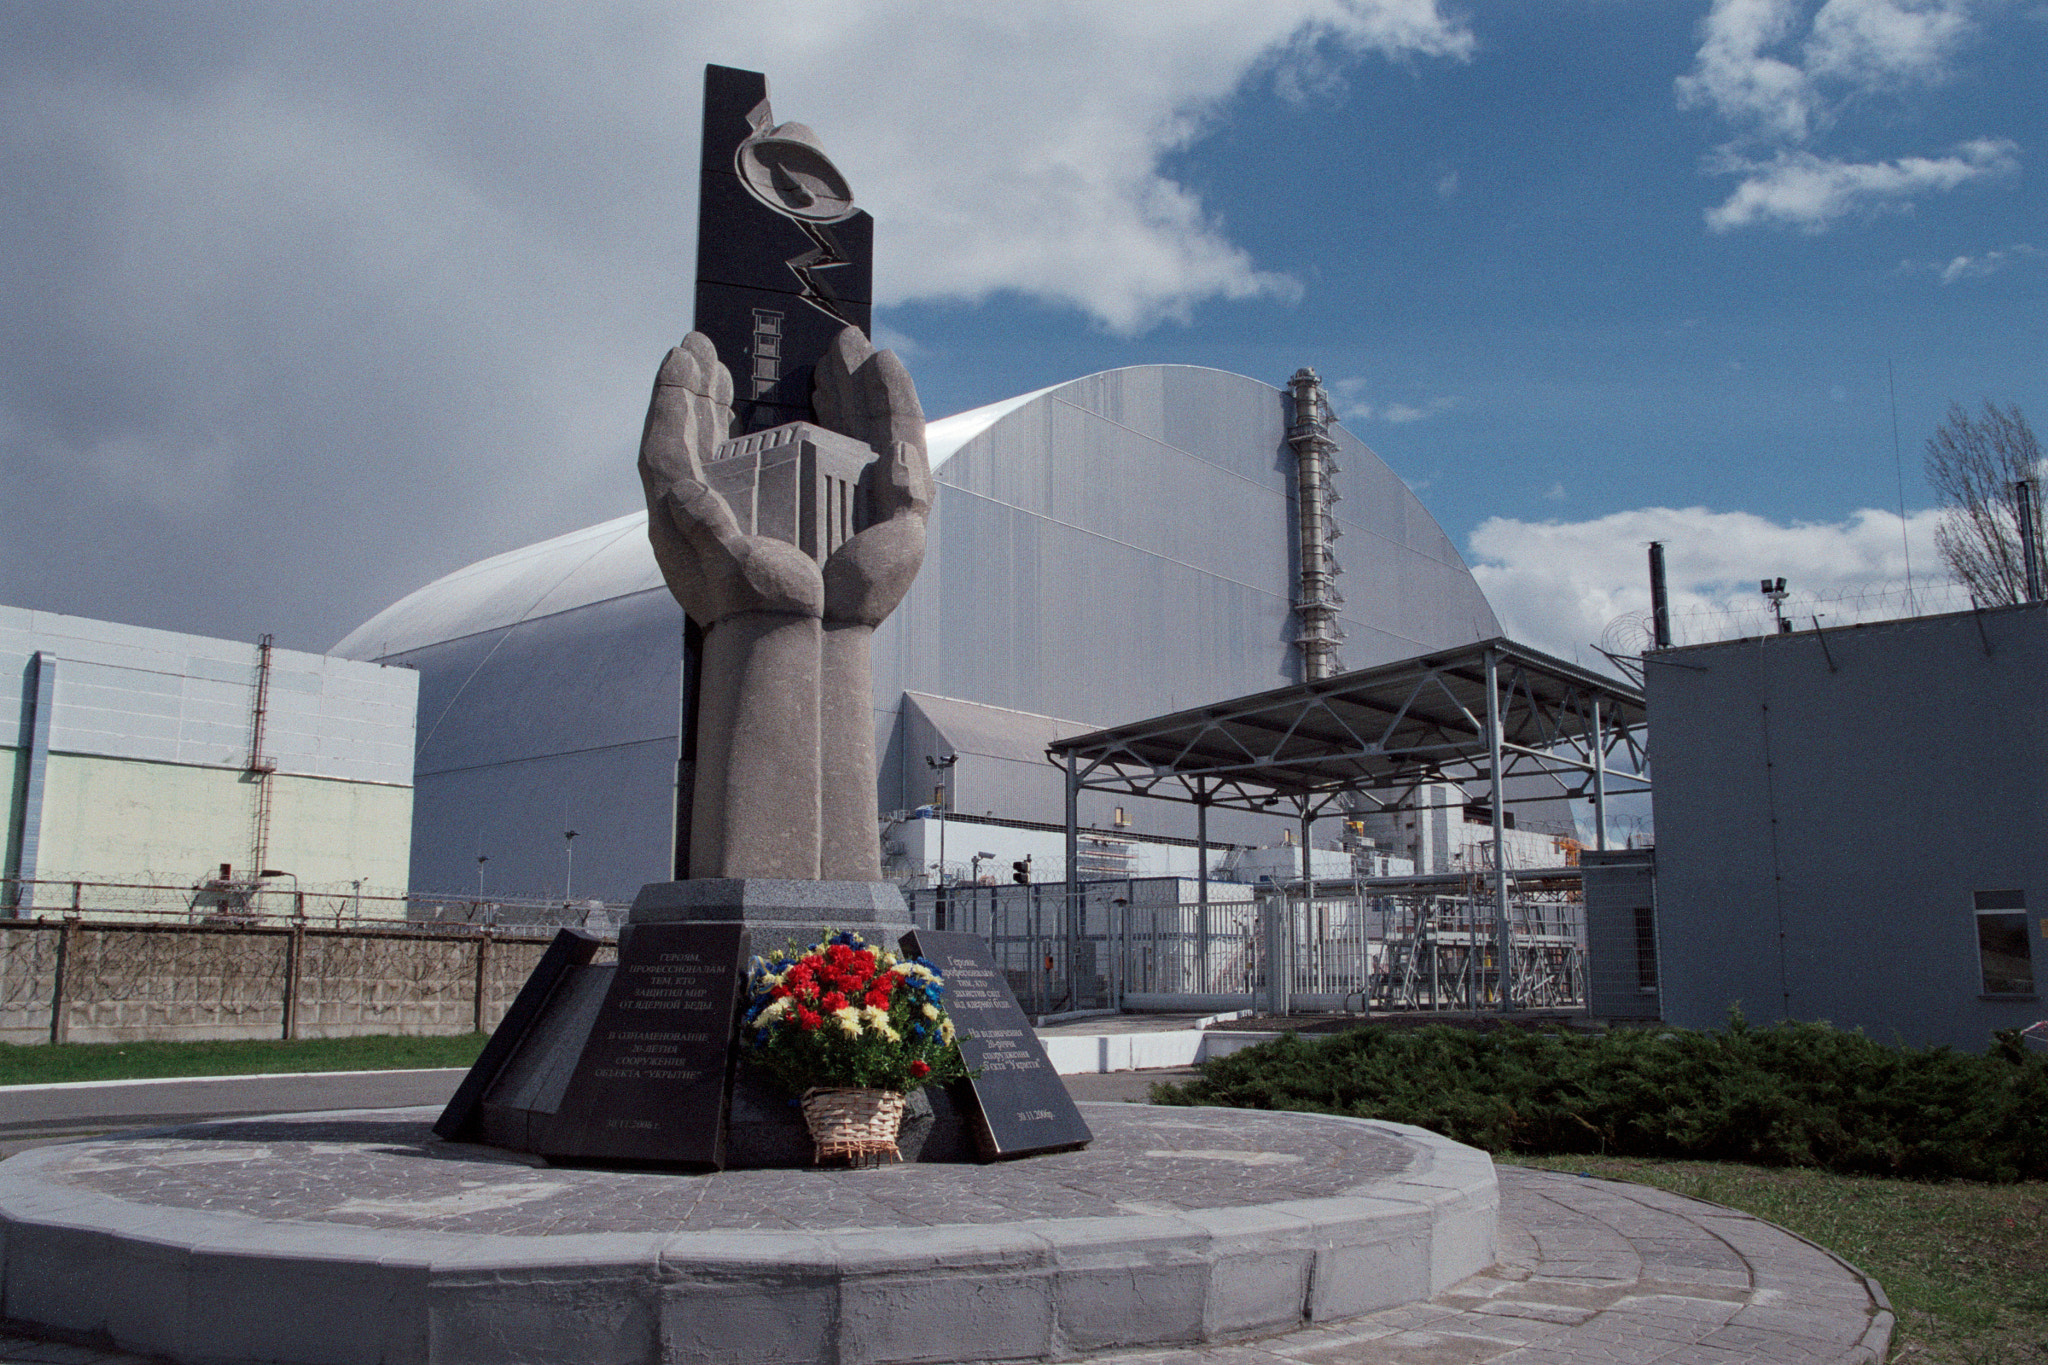 Protective confinement over the fourth power unit of the Chernobyl nuclear power plant. In front, a monument to the heroes who sealed the reactor at the cost of incredible efforts. Picture by Stanislav Nepochatov. CC BY-SA 3.0